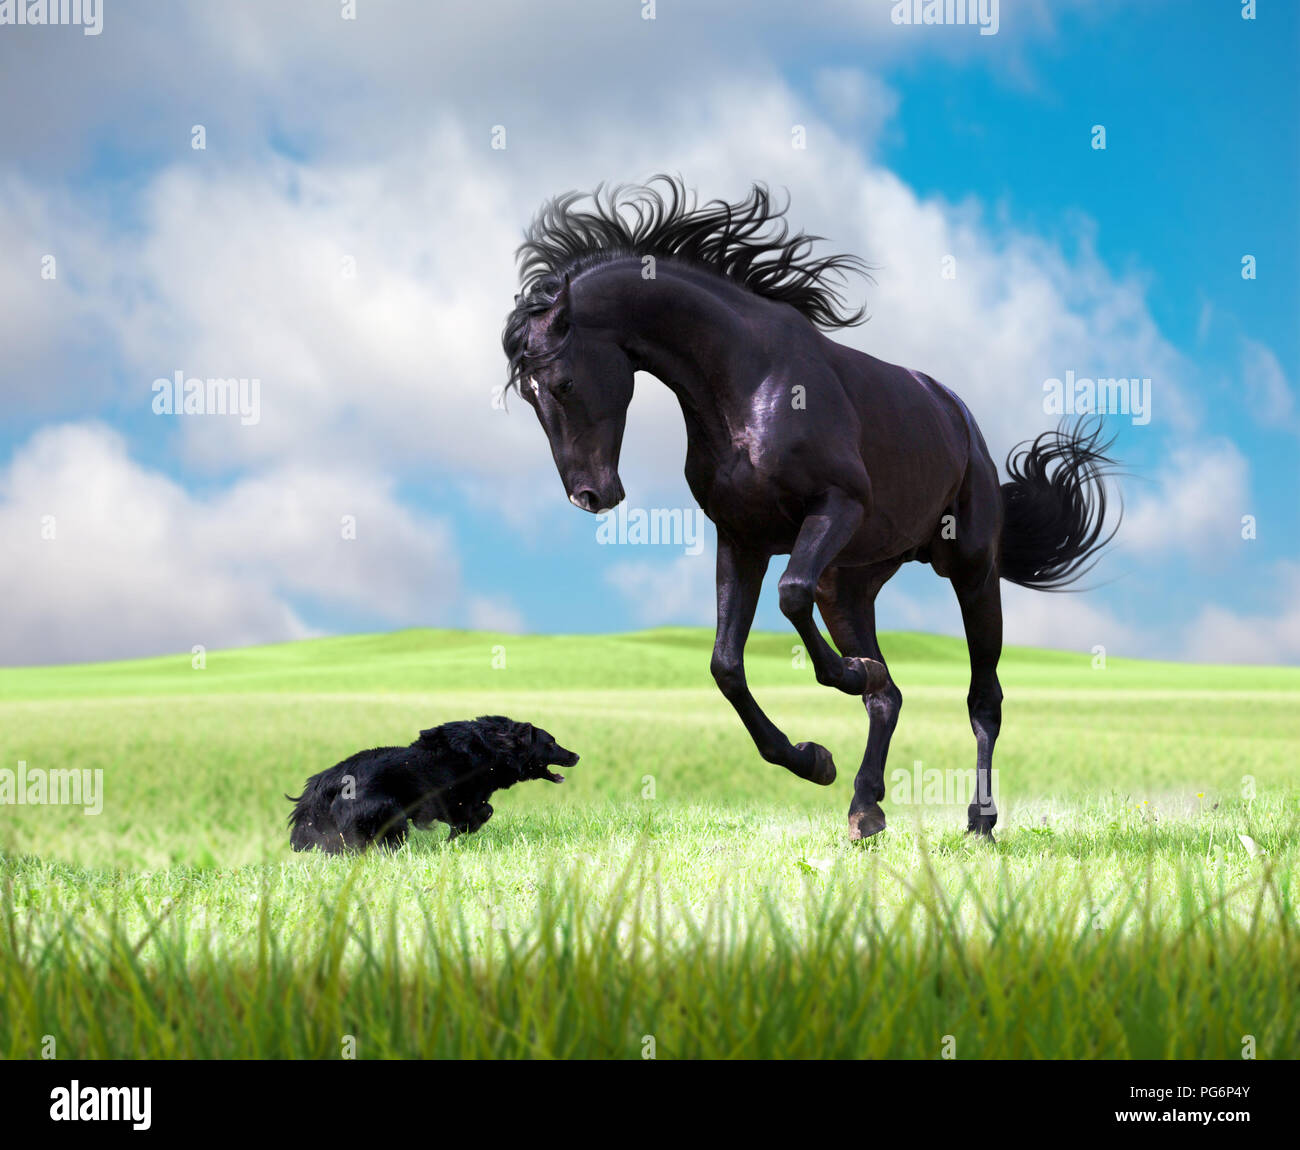 Black horse playing with the black dog on the green grass on the cloudy sky background - Stock Image